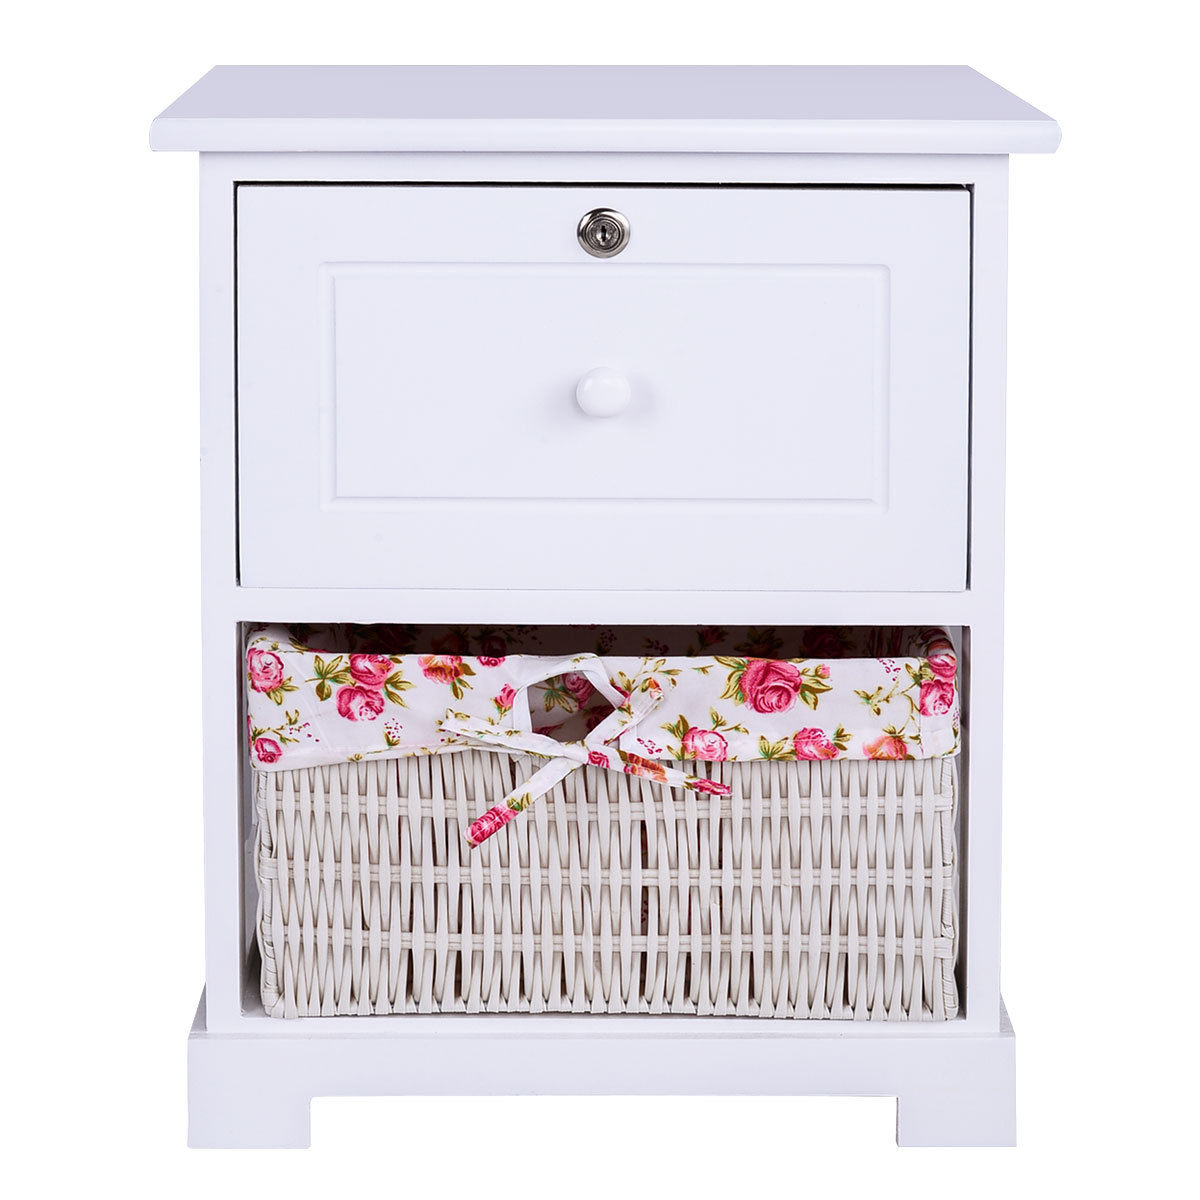 Gymax 2PCS 2 Tiers Wood Nightstand1 Drawer Bedside End Table Organizer W/Basket White - image 7 of 8